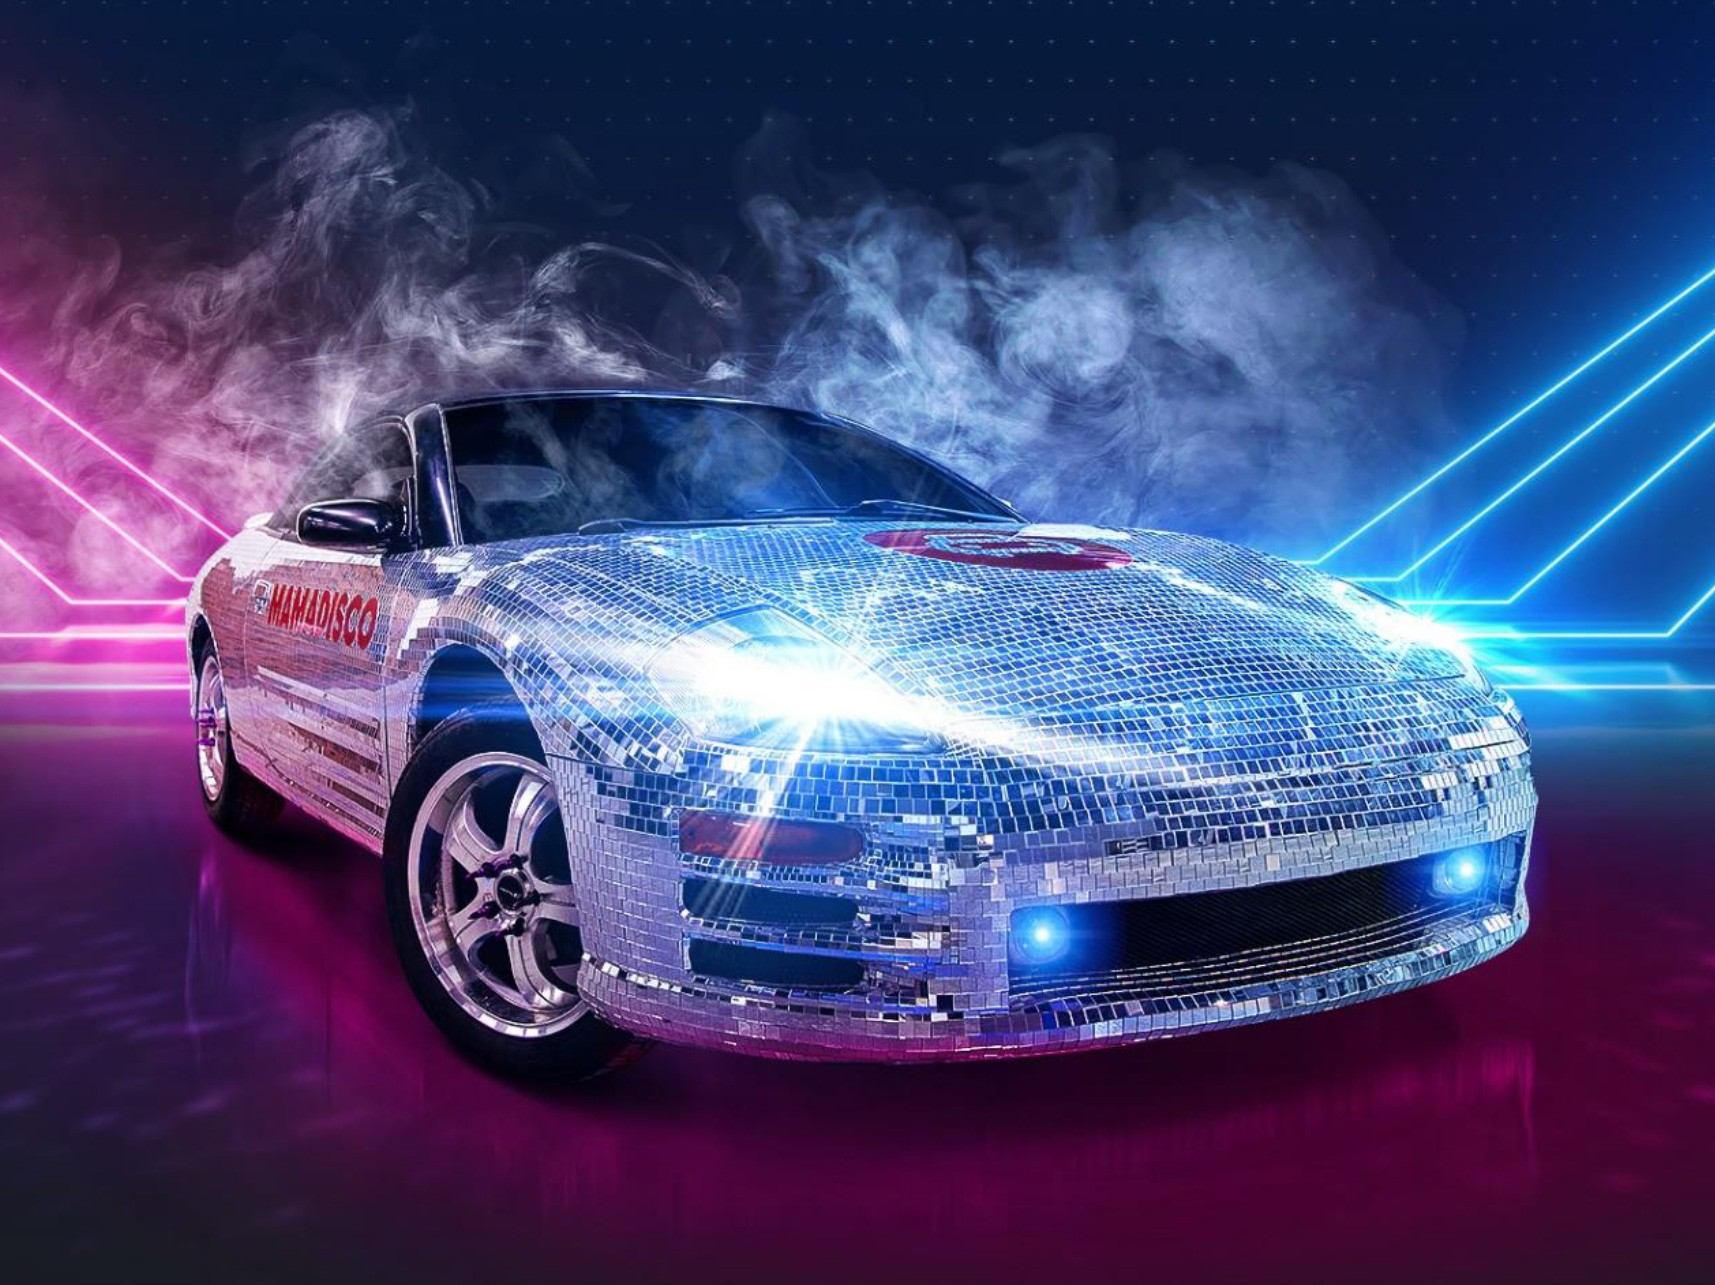 Car tuning takes weird shapes sometimes. Russian tuner Garage54 has recently published a YouTube video showing its latest project: a Mitsubishi Eclipse covered with 65,000 tiny mirrors.